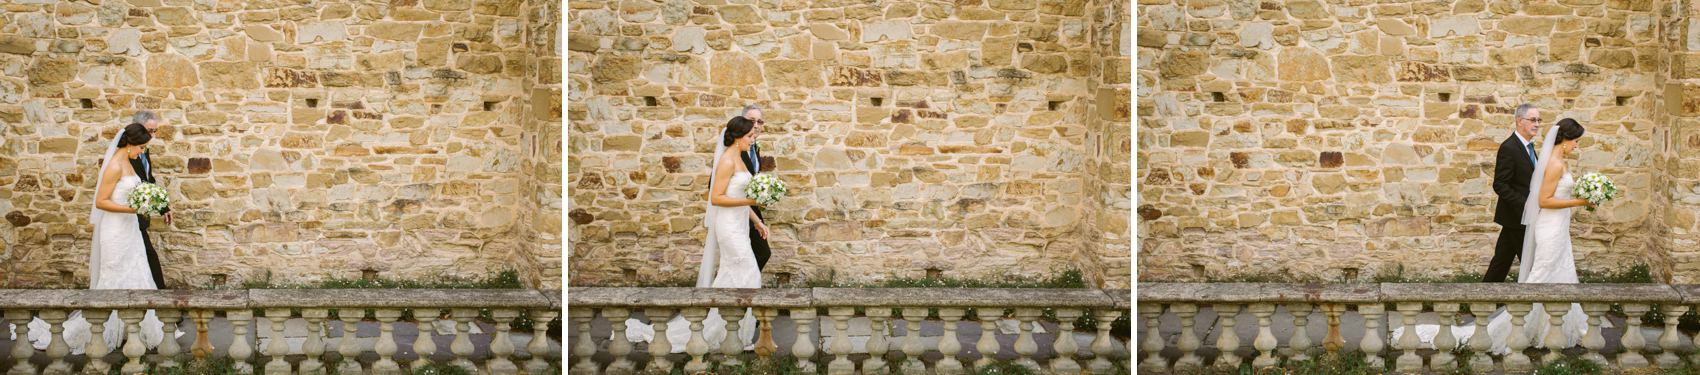 Montsalvat-Wedding-Photography_0129